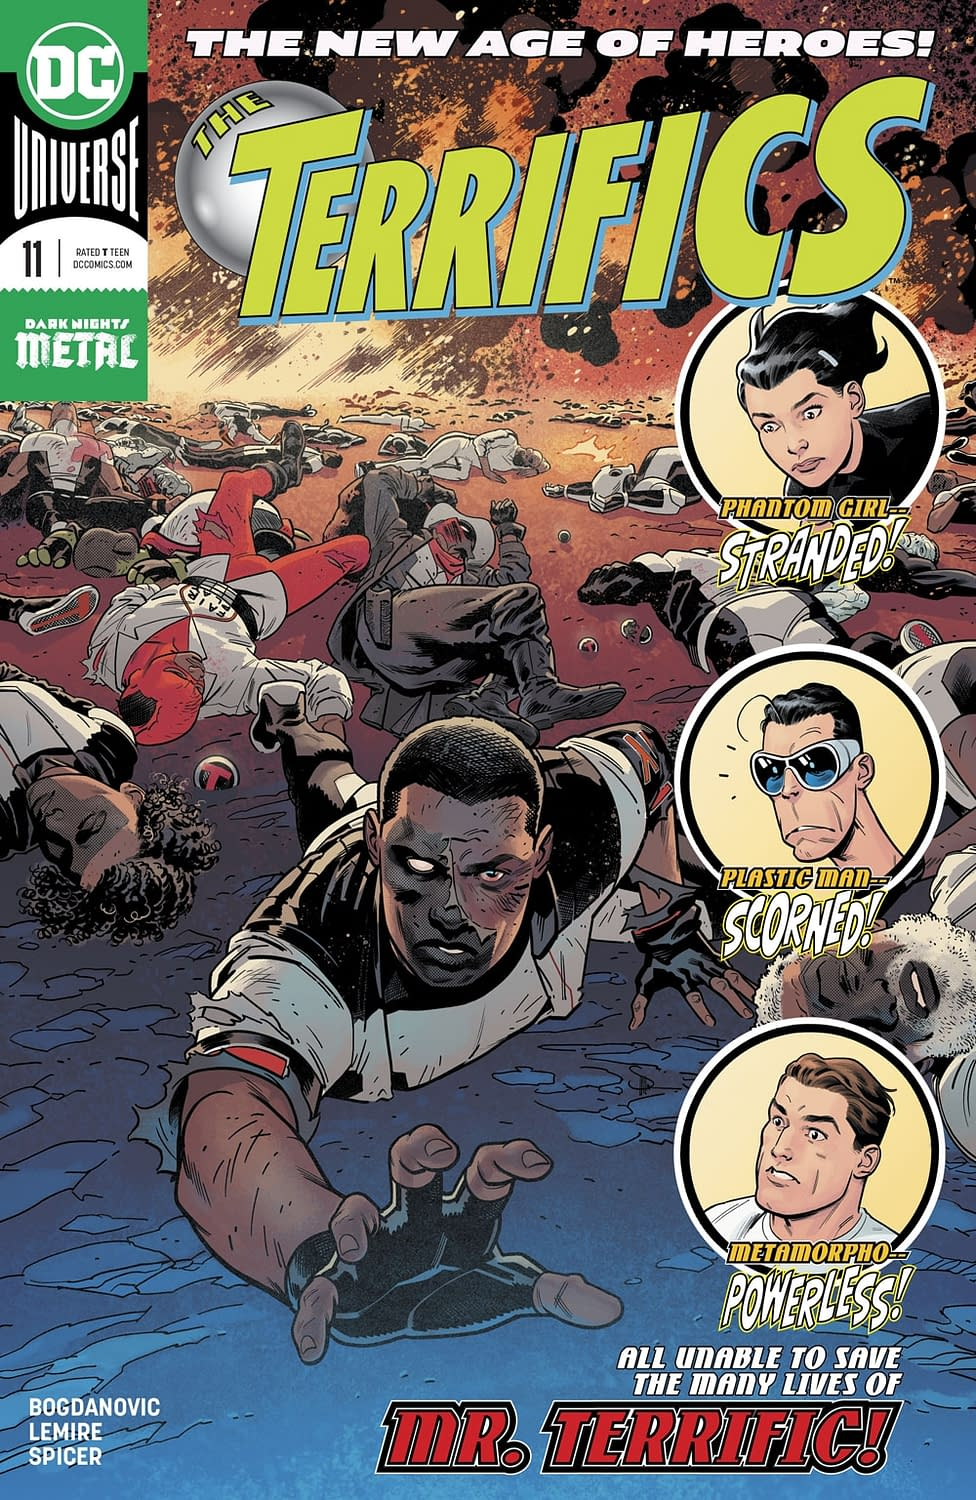 Plastic Man's Reunion with Angel Isn't Going as Planned in Next Week's Terrifics #11